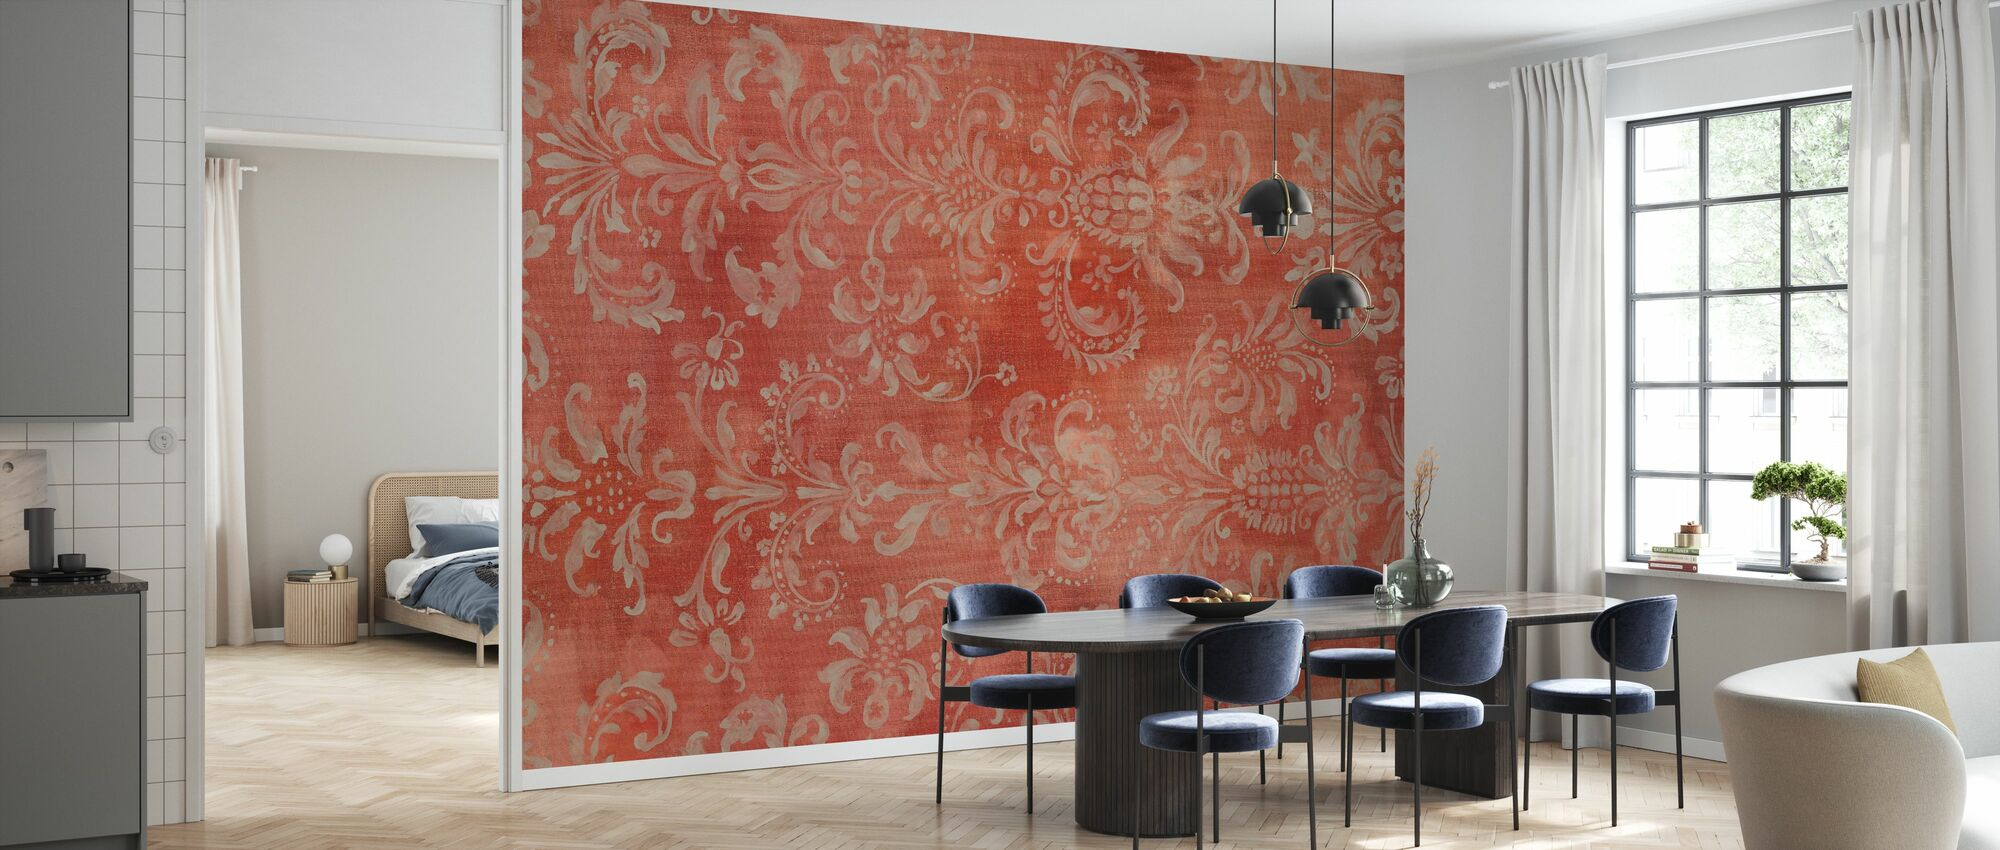 Damask Texture - Wallpaper - Kitchen